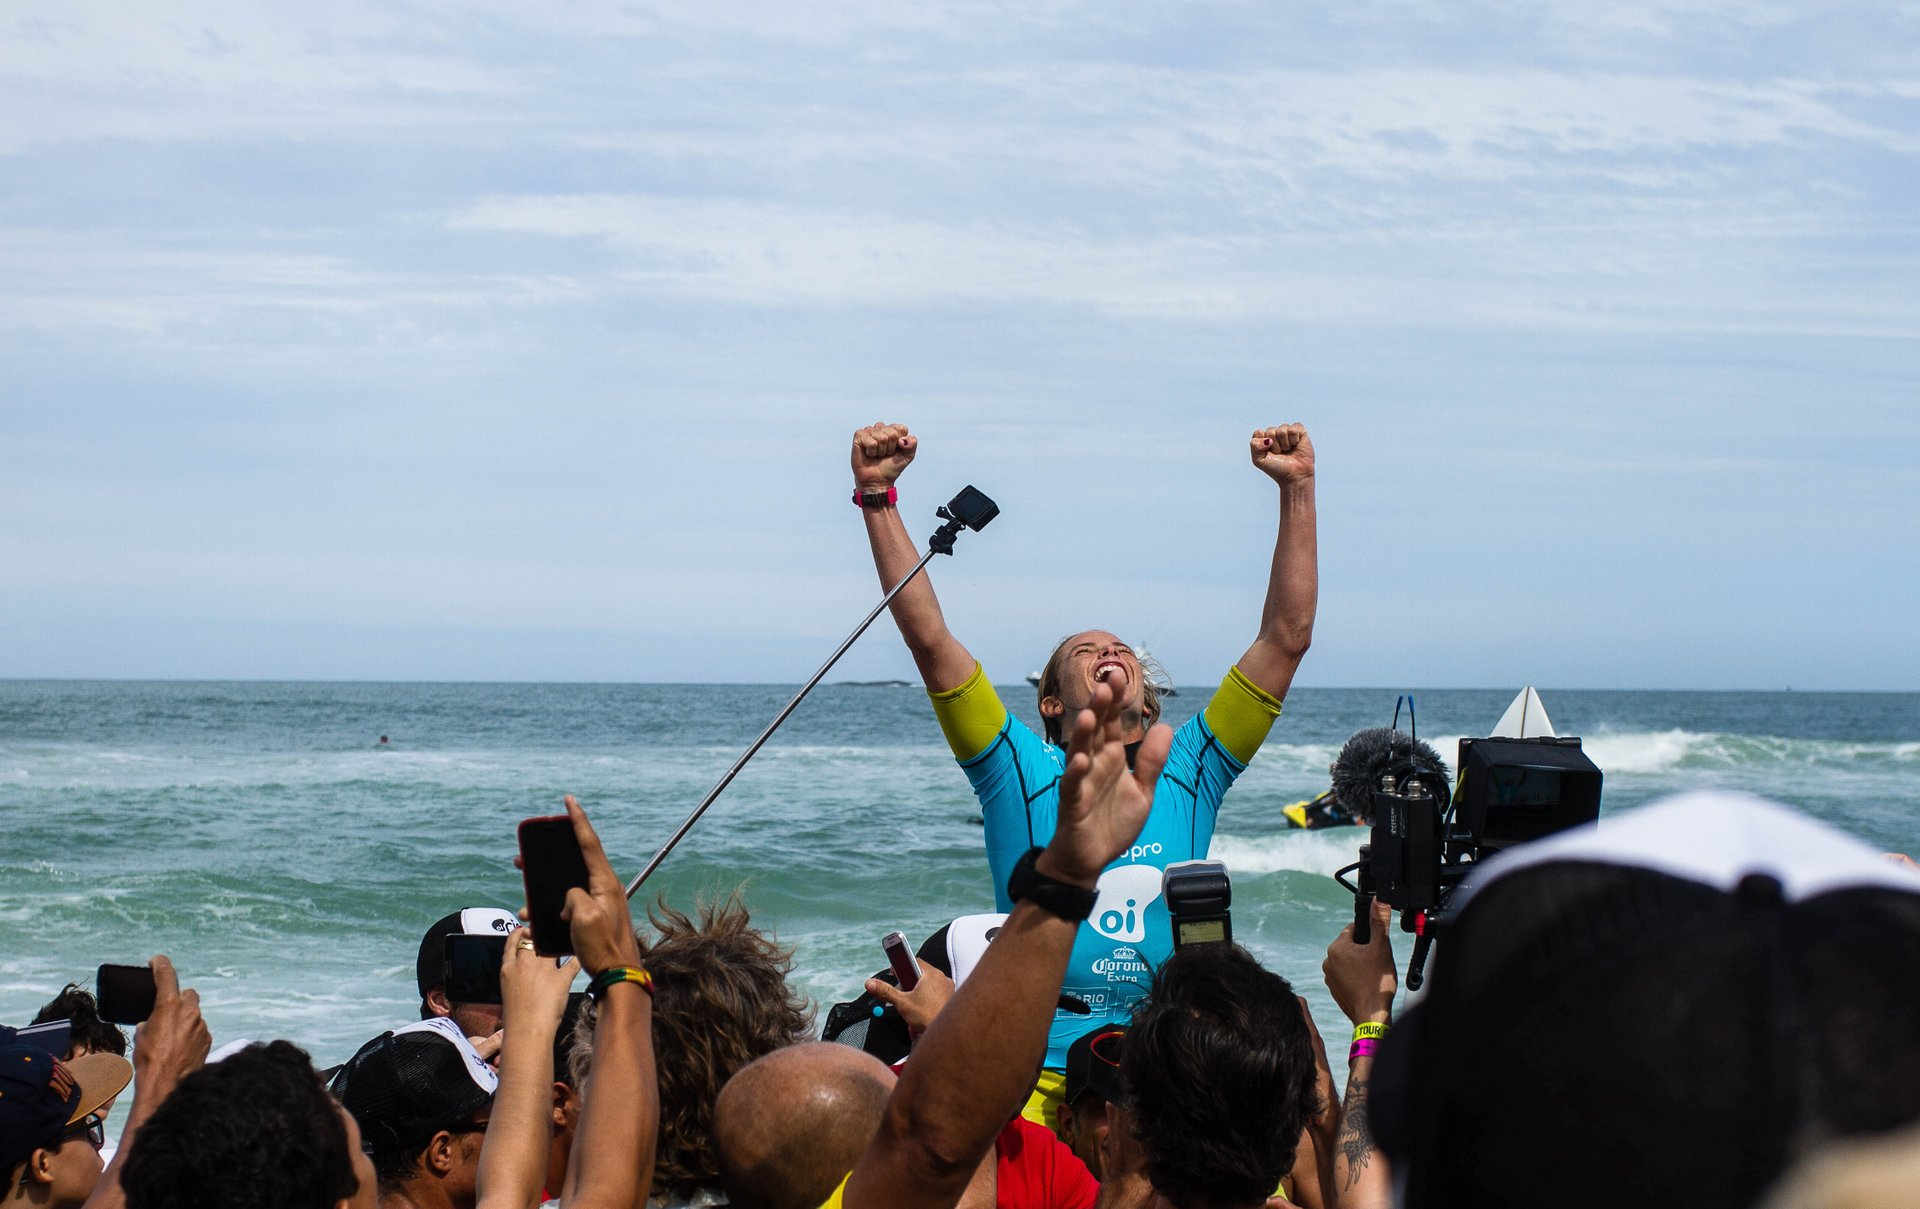 Best time to see Oi Rio Pro 2020